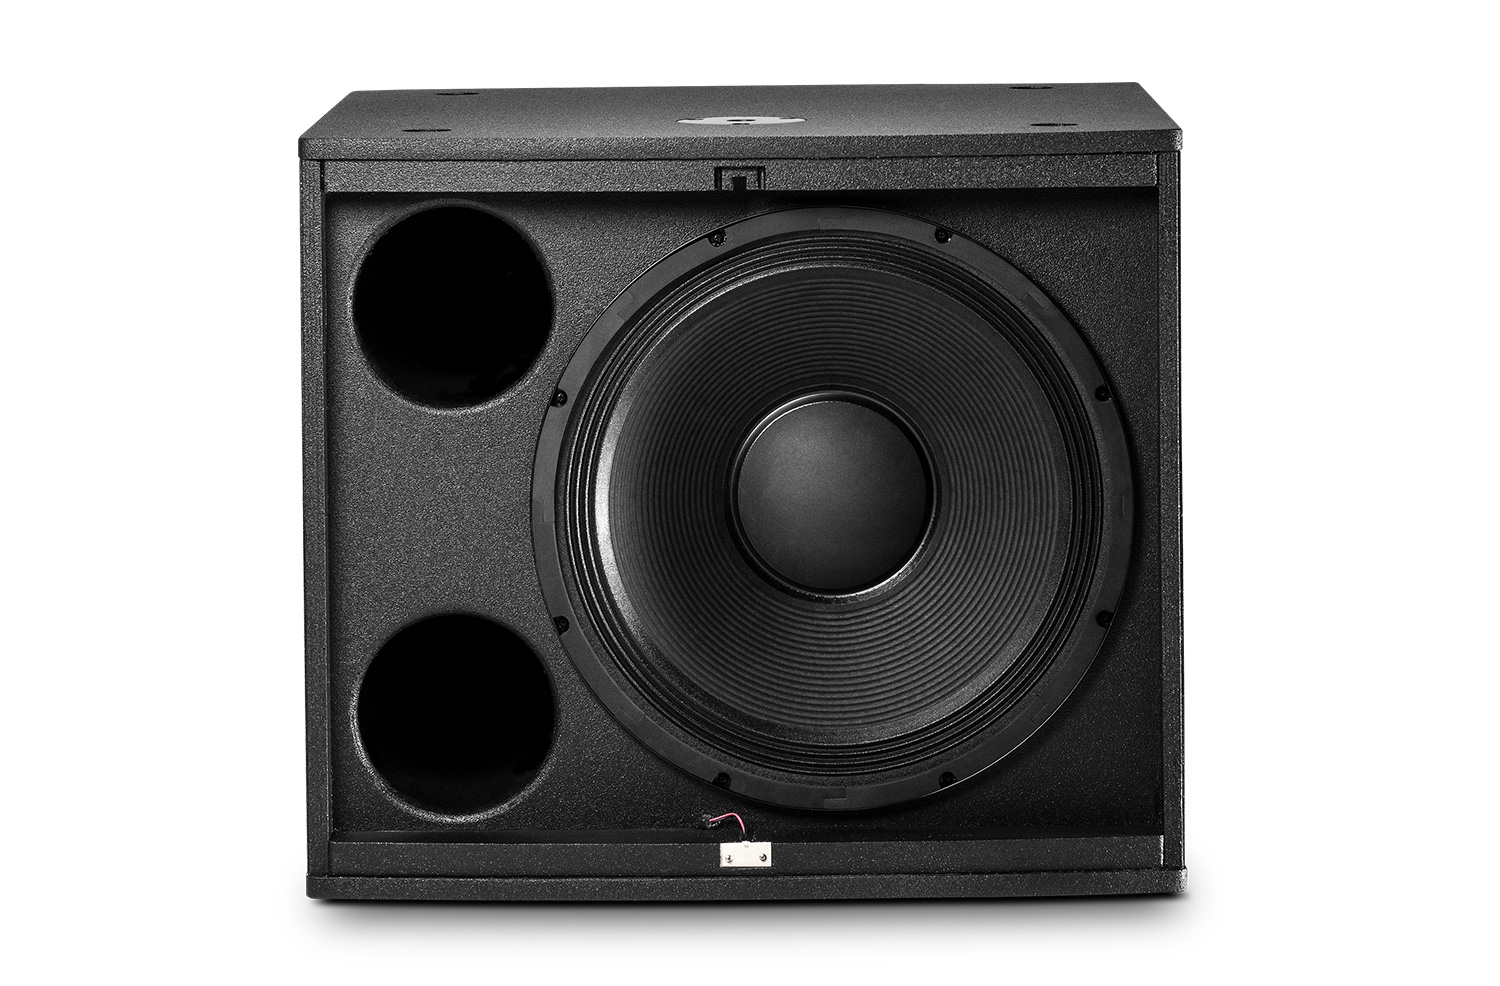 jbl eon618s 1000w 18 powered subwoofer. Black Bedroom Furniture Sets. Home Design Ideas